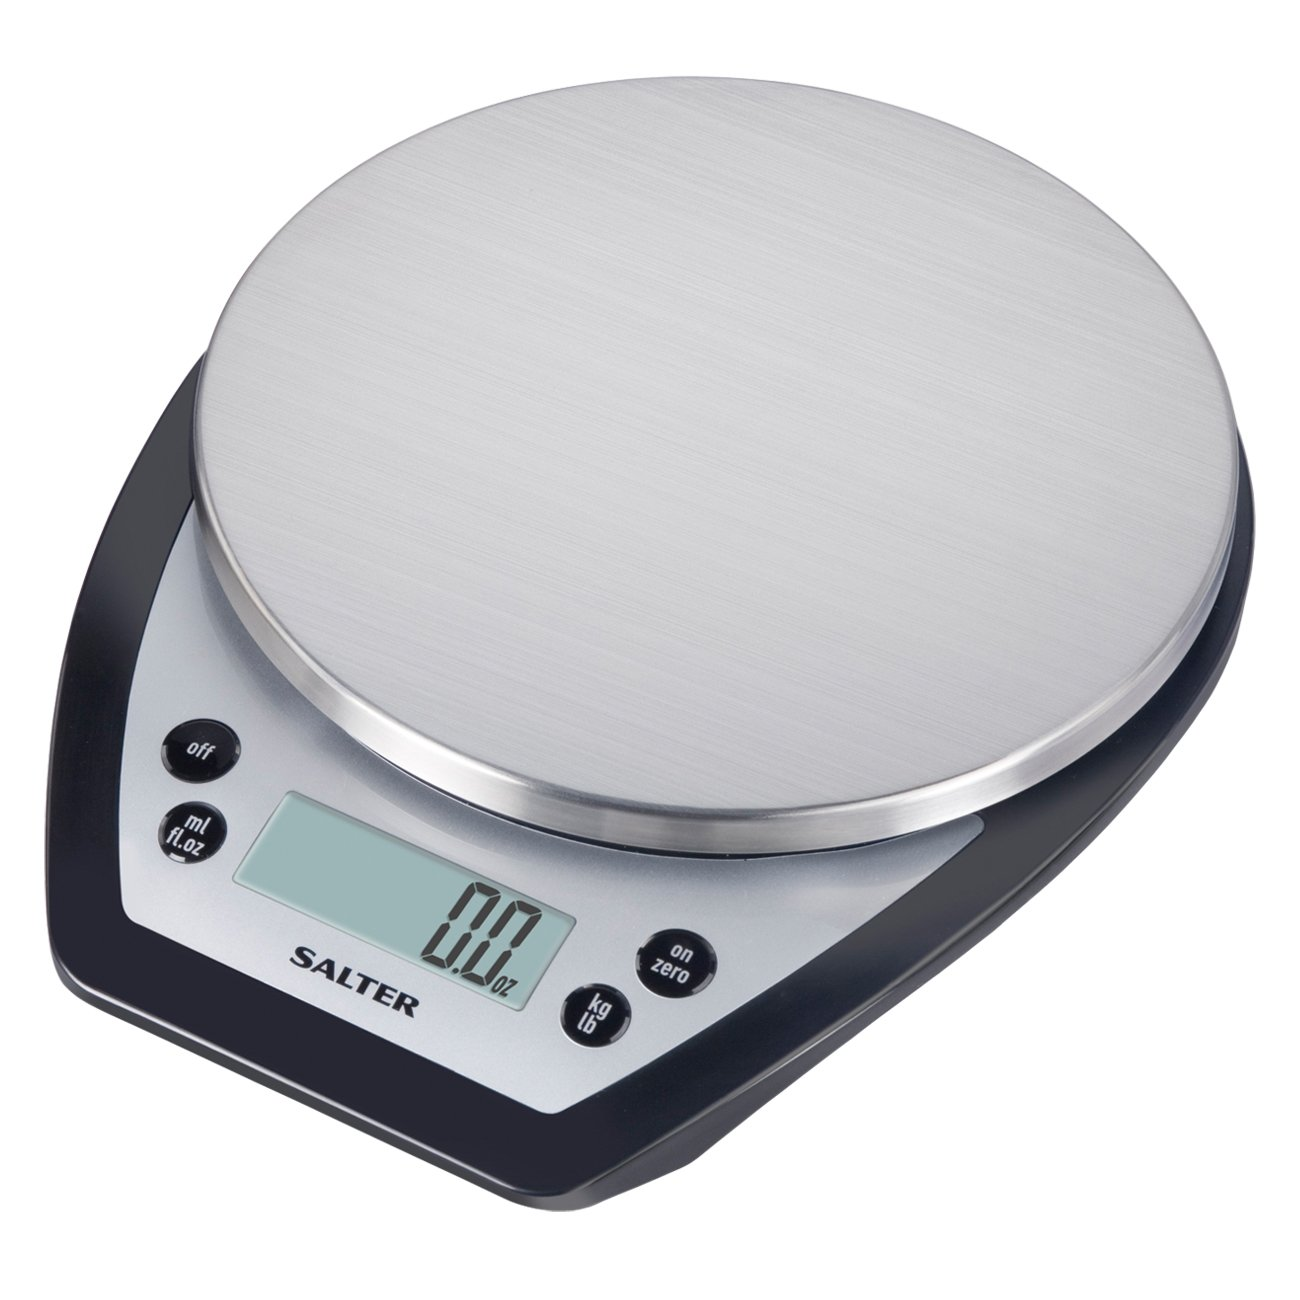 Amazon.com: Salter Aquatronic Digital Kitchen Scale (Silver and ...